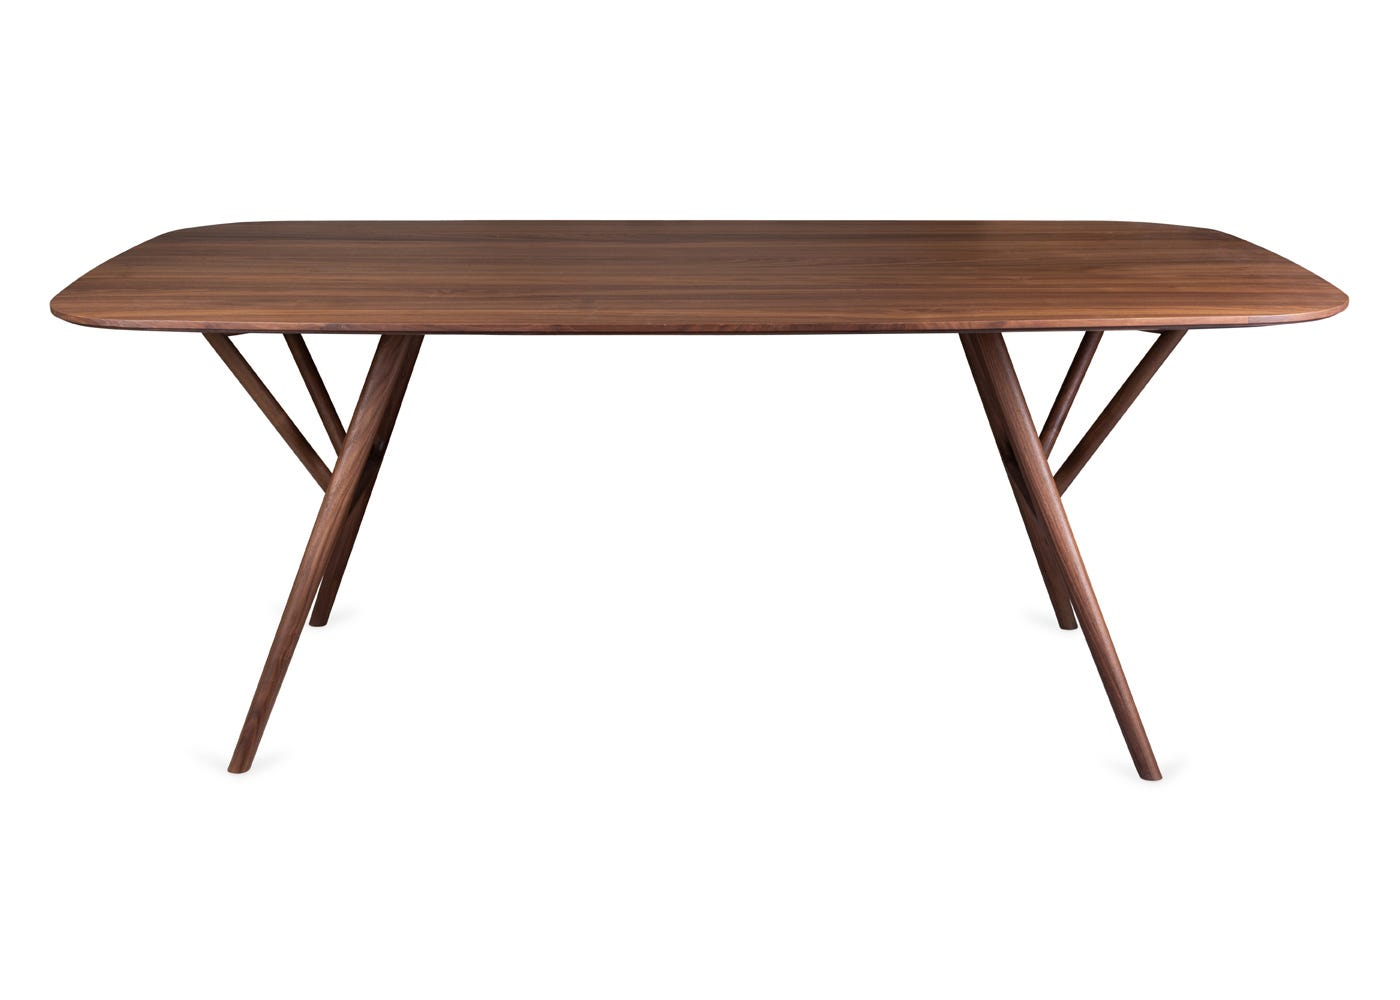 As shown: Anais walnut dining table - Front profile.